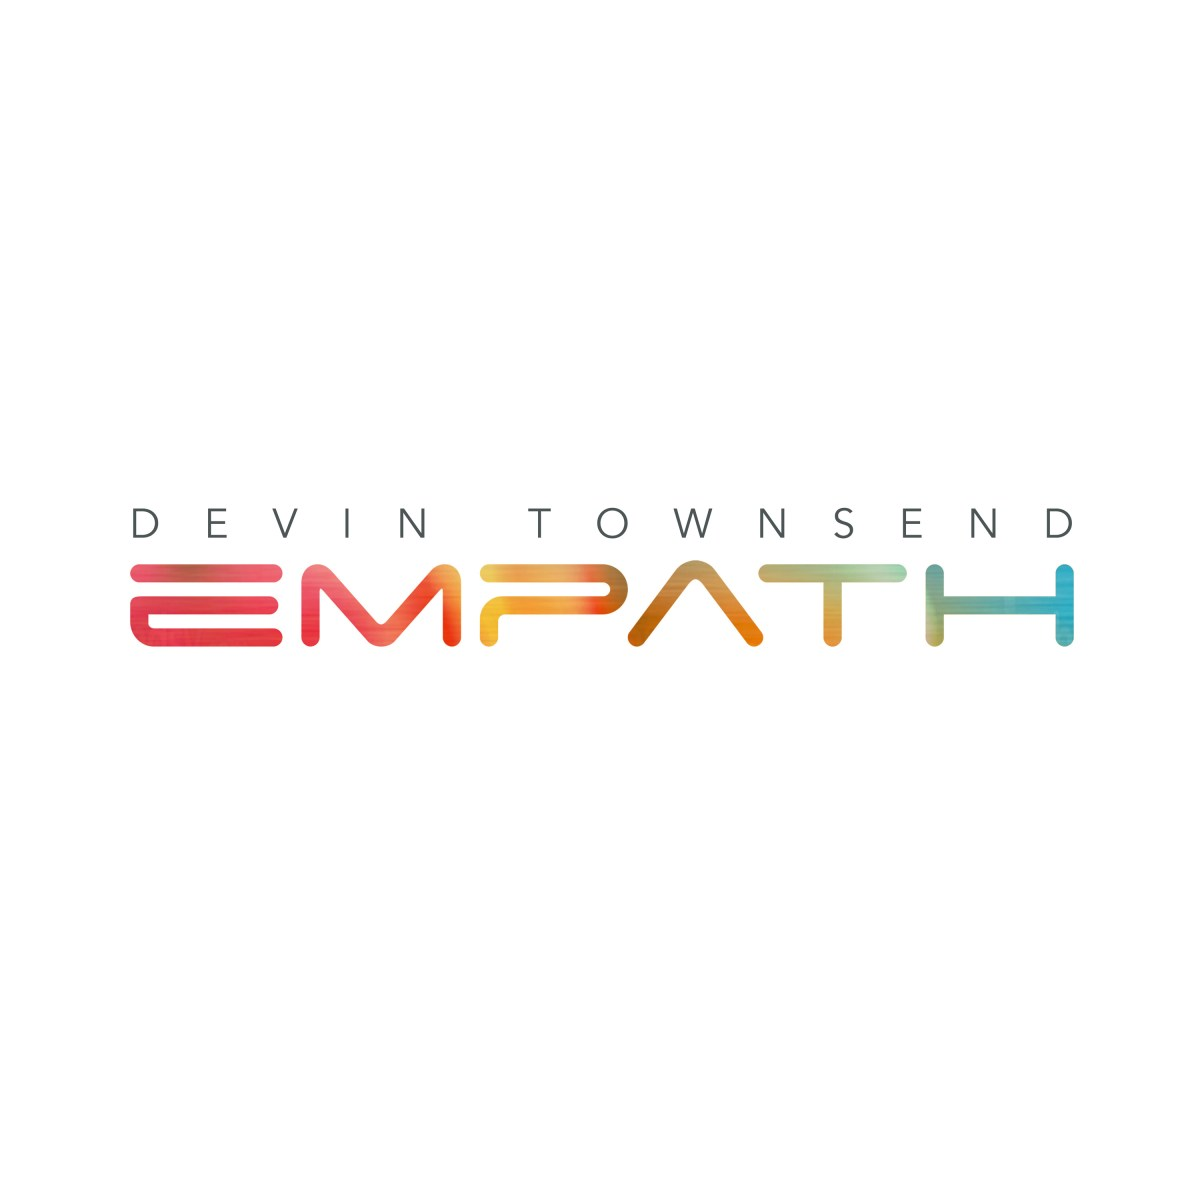 Devin Townsend - Empath (Album Review)